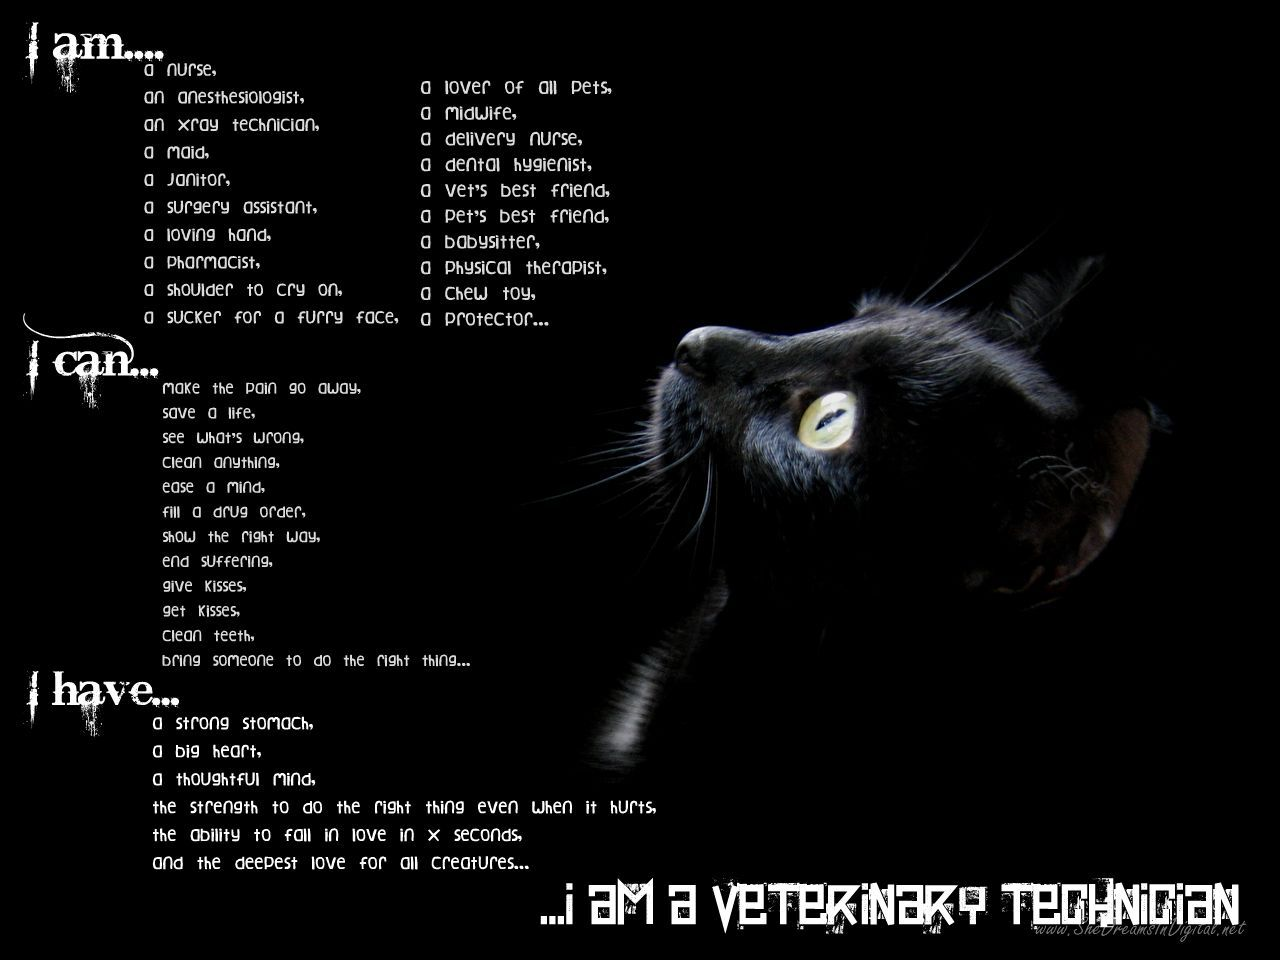 i am a vet tech (and proud!) | cvt | pinterest | tech, veterinary, Human Body